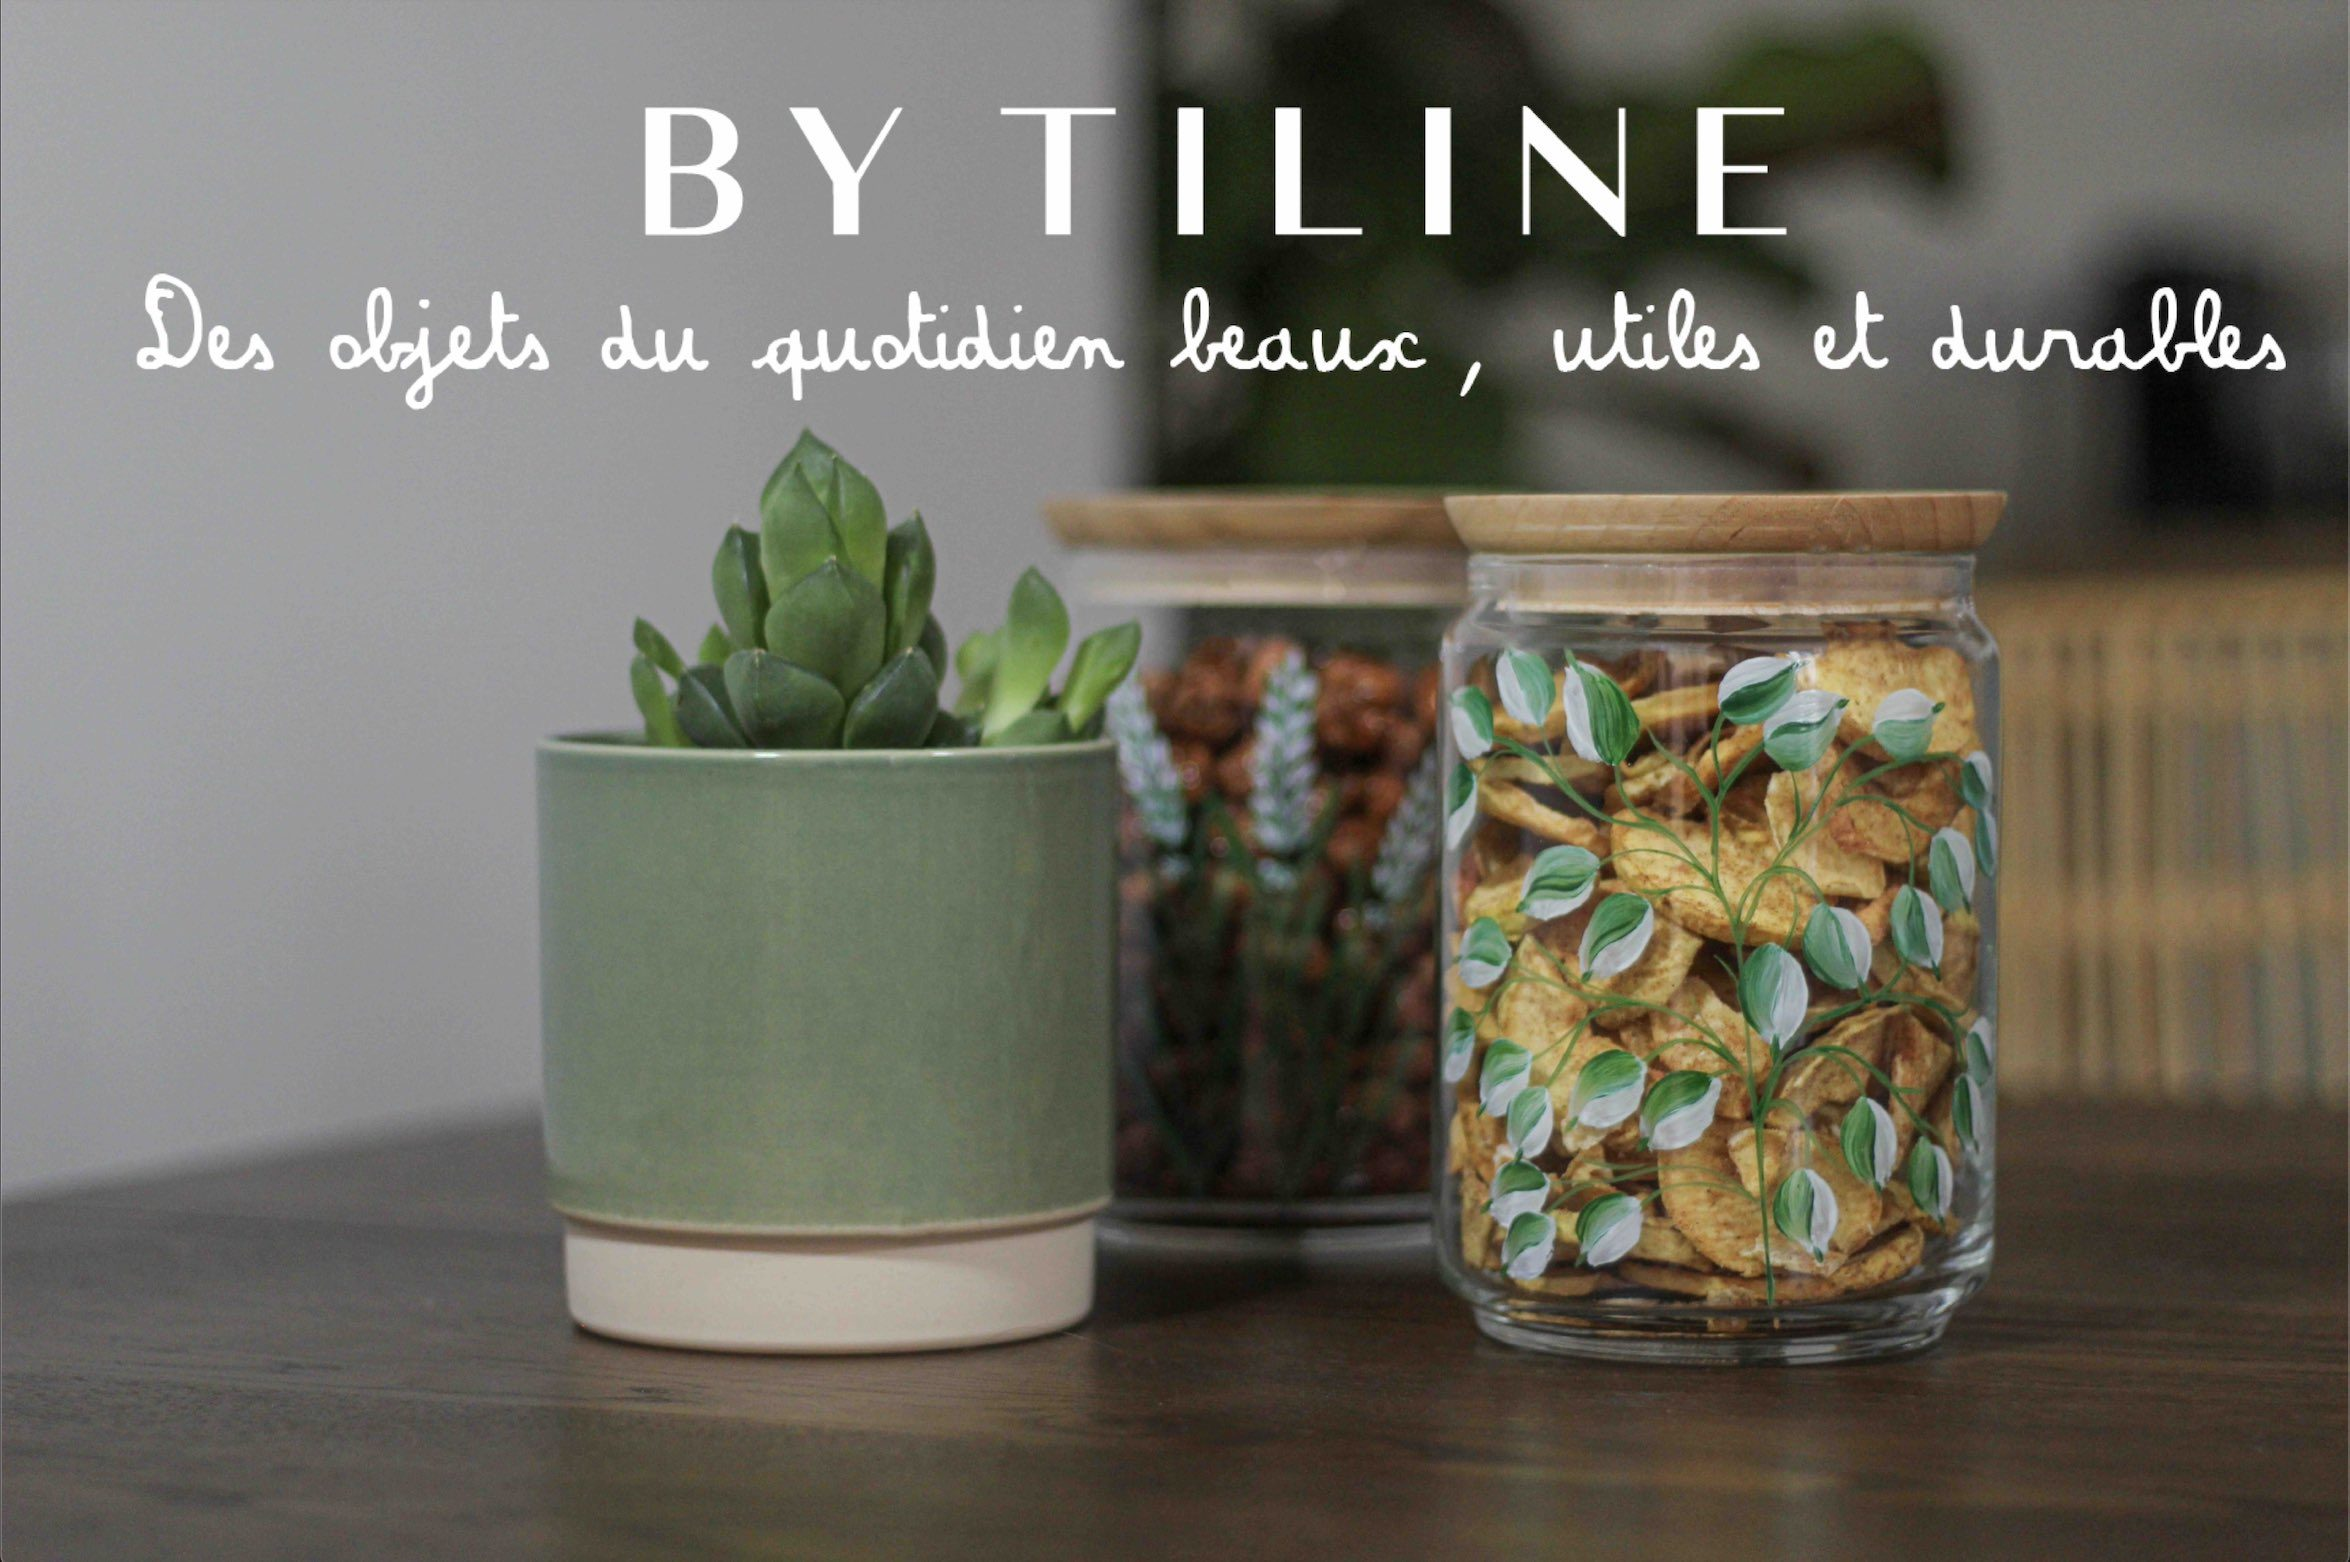 BY TILINE